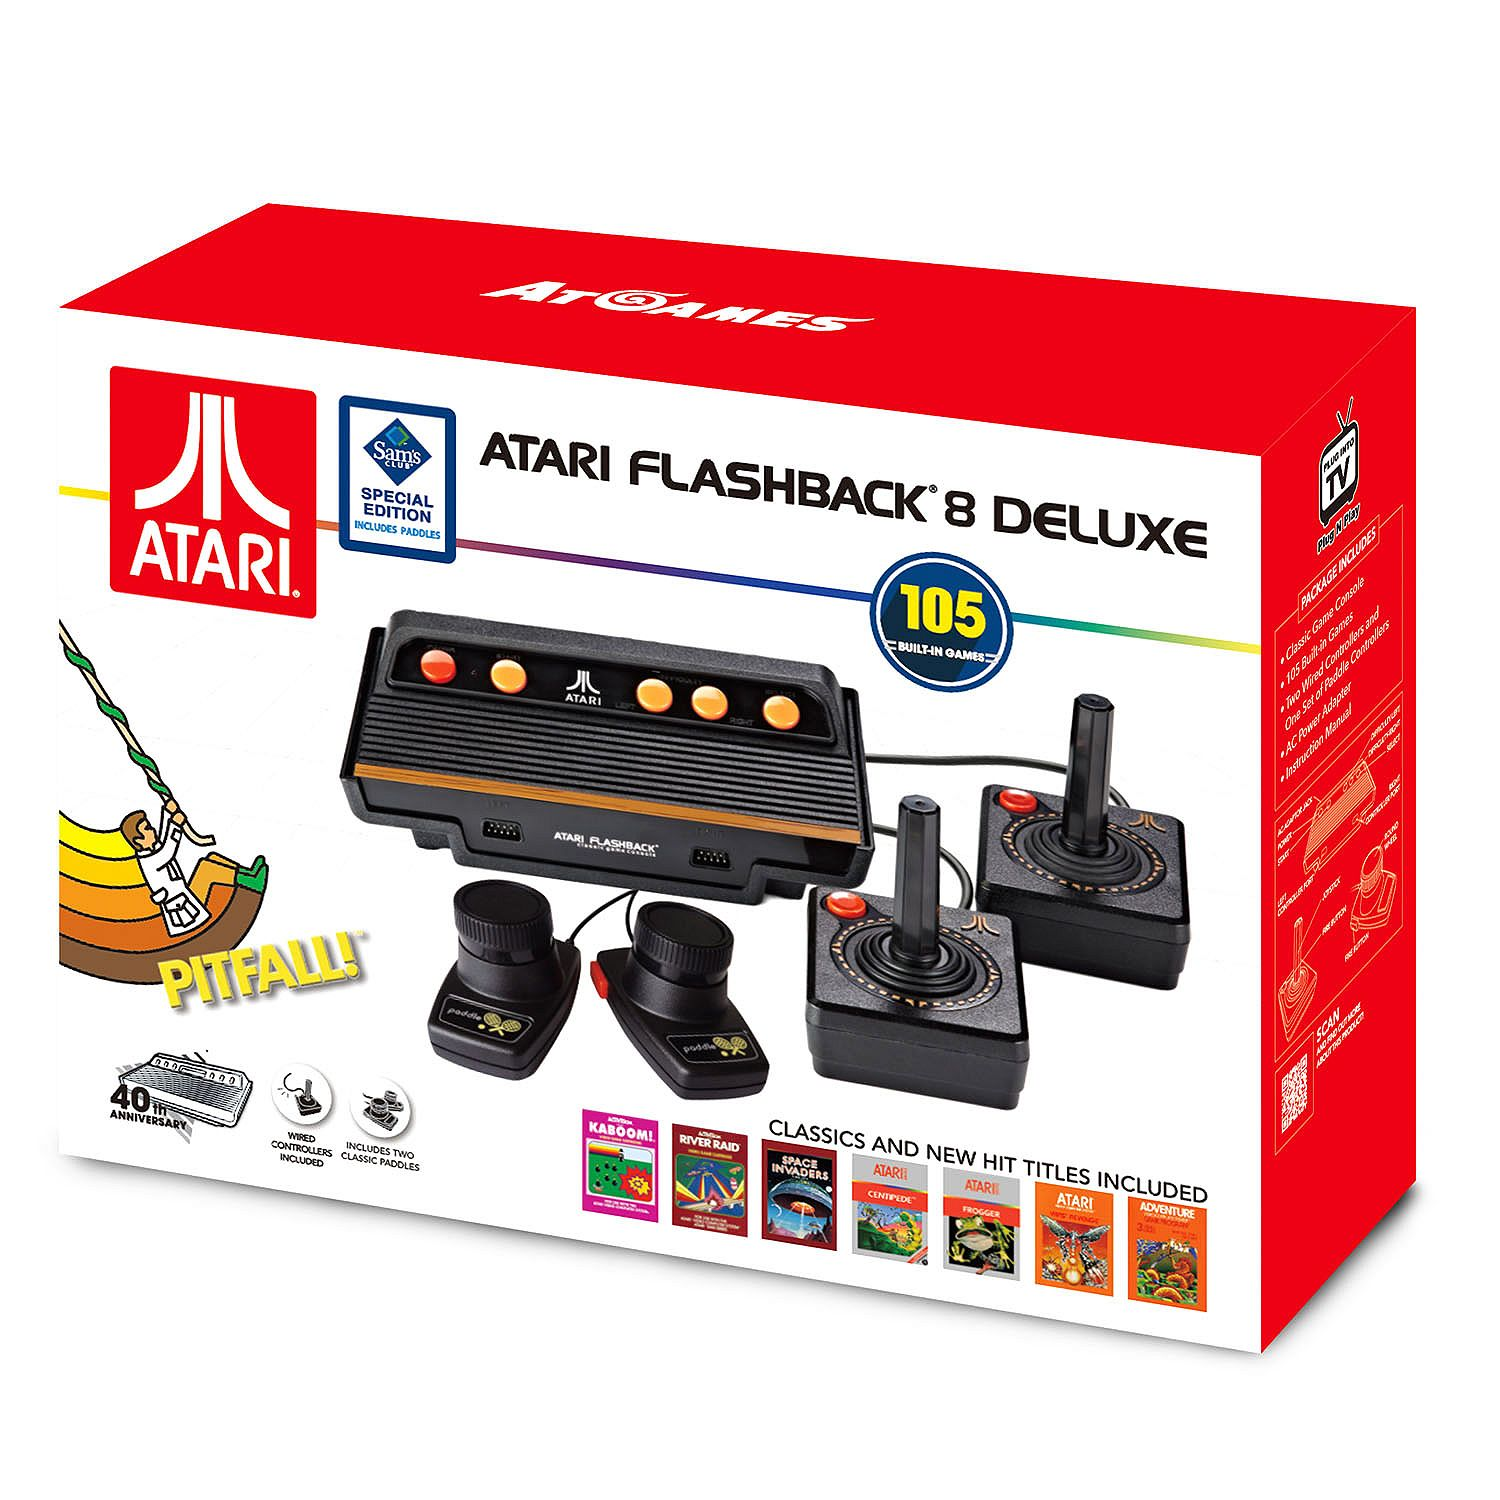 Atari Flashback 8 Deluxe with 105 games - 2 Wired controllers and 2 Wired  Paddles - Walmart.com